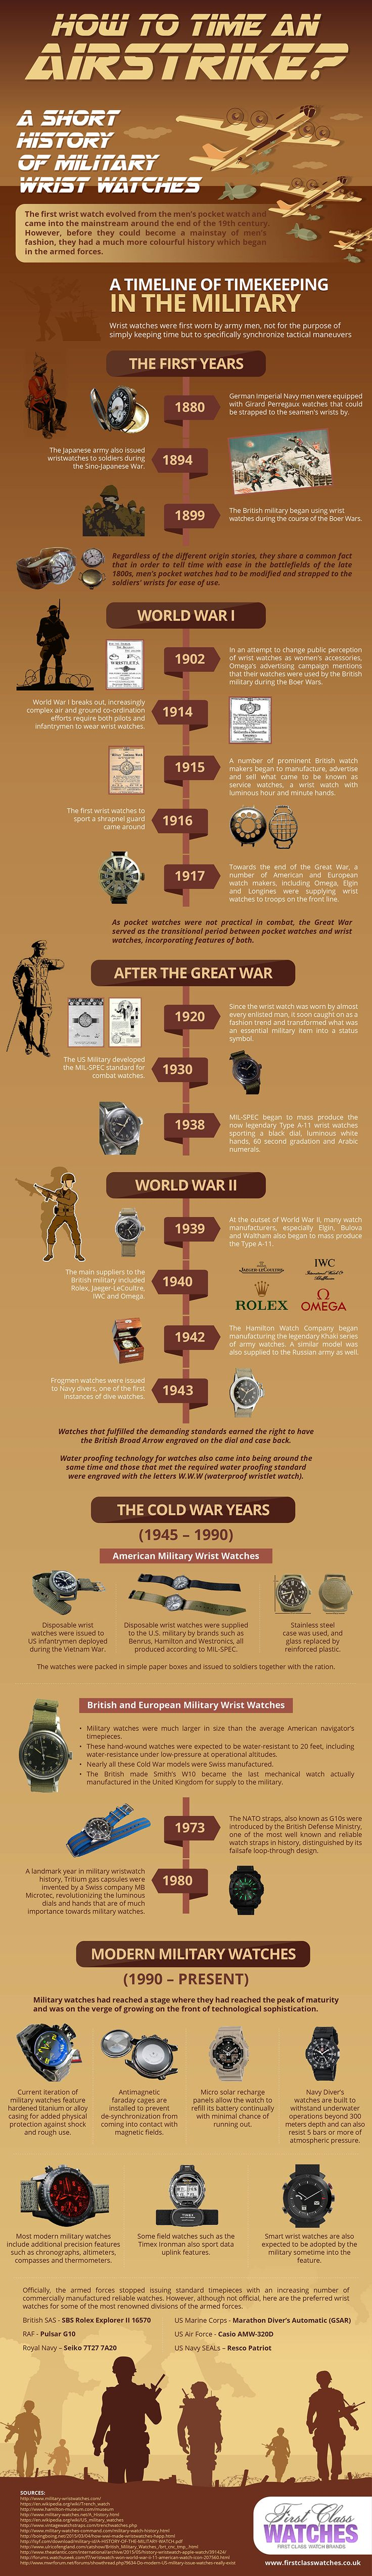 https://www.firstclasswatches.co.uk/blog/infographics/how-to-time-an-airstike/ Wrist watches owe much of their popularity from usage in conflicts by armed forces throughout the world. We follow this trend from the 19th century right up to the present day in our military watches infographic.